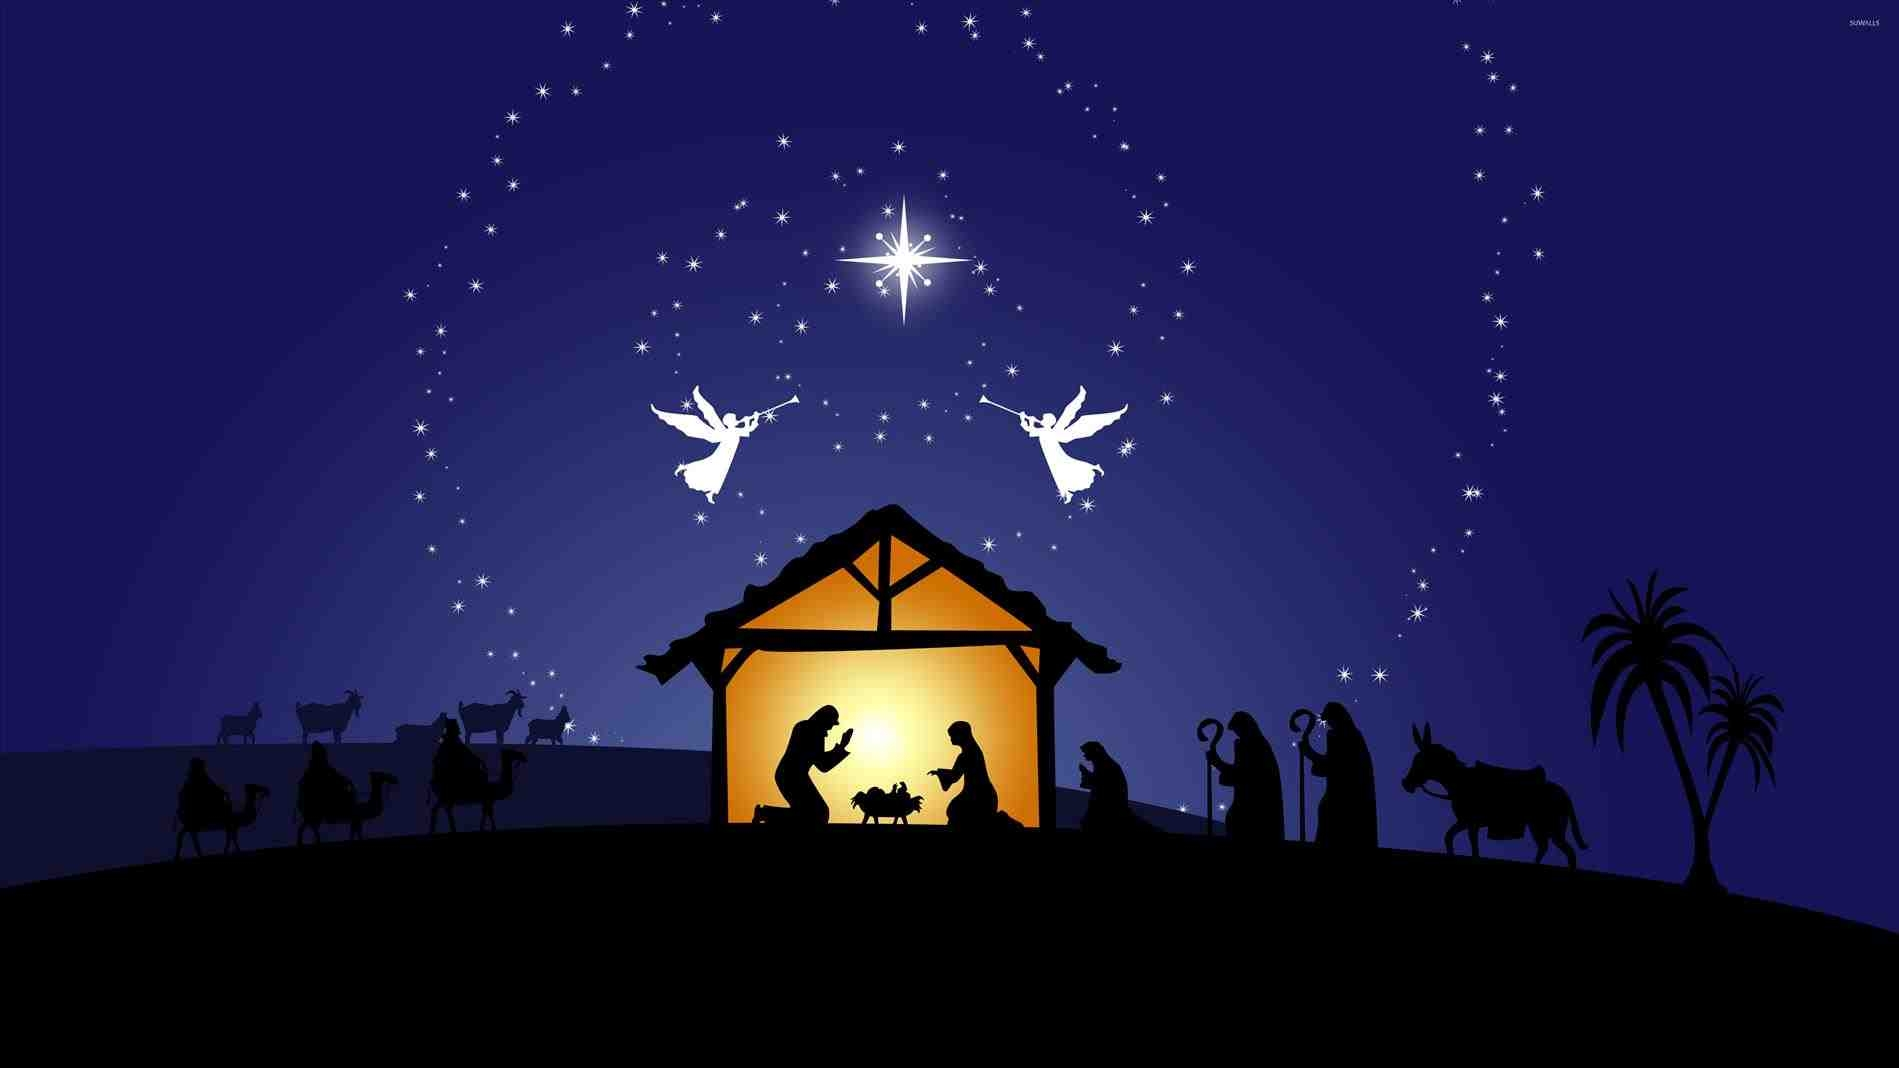 nativity scene coloring pages - merry christmas nativity images free